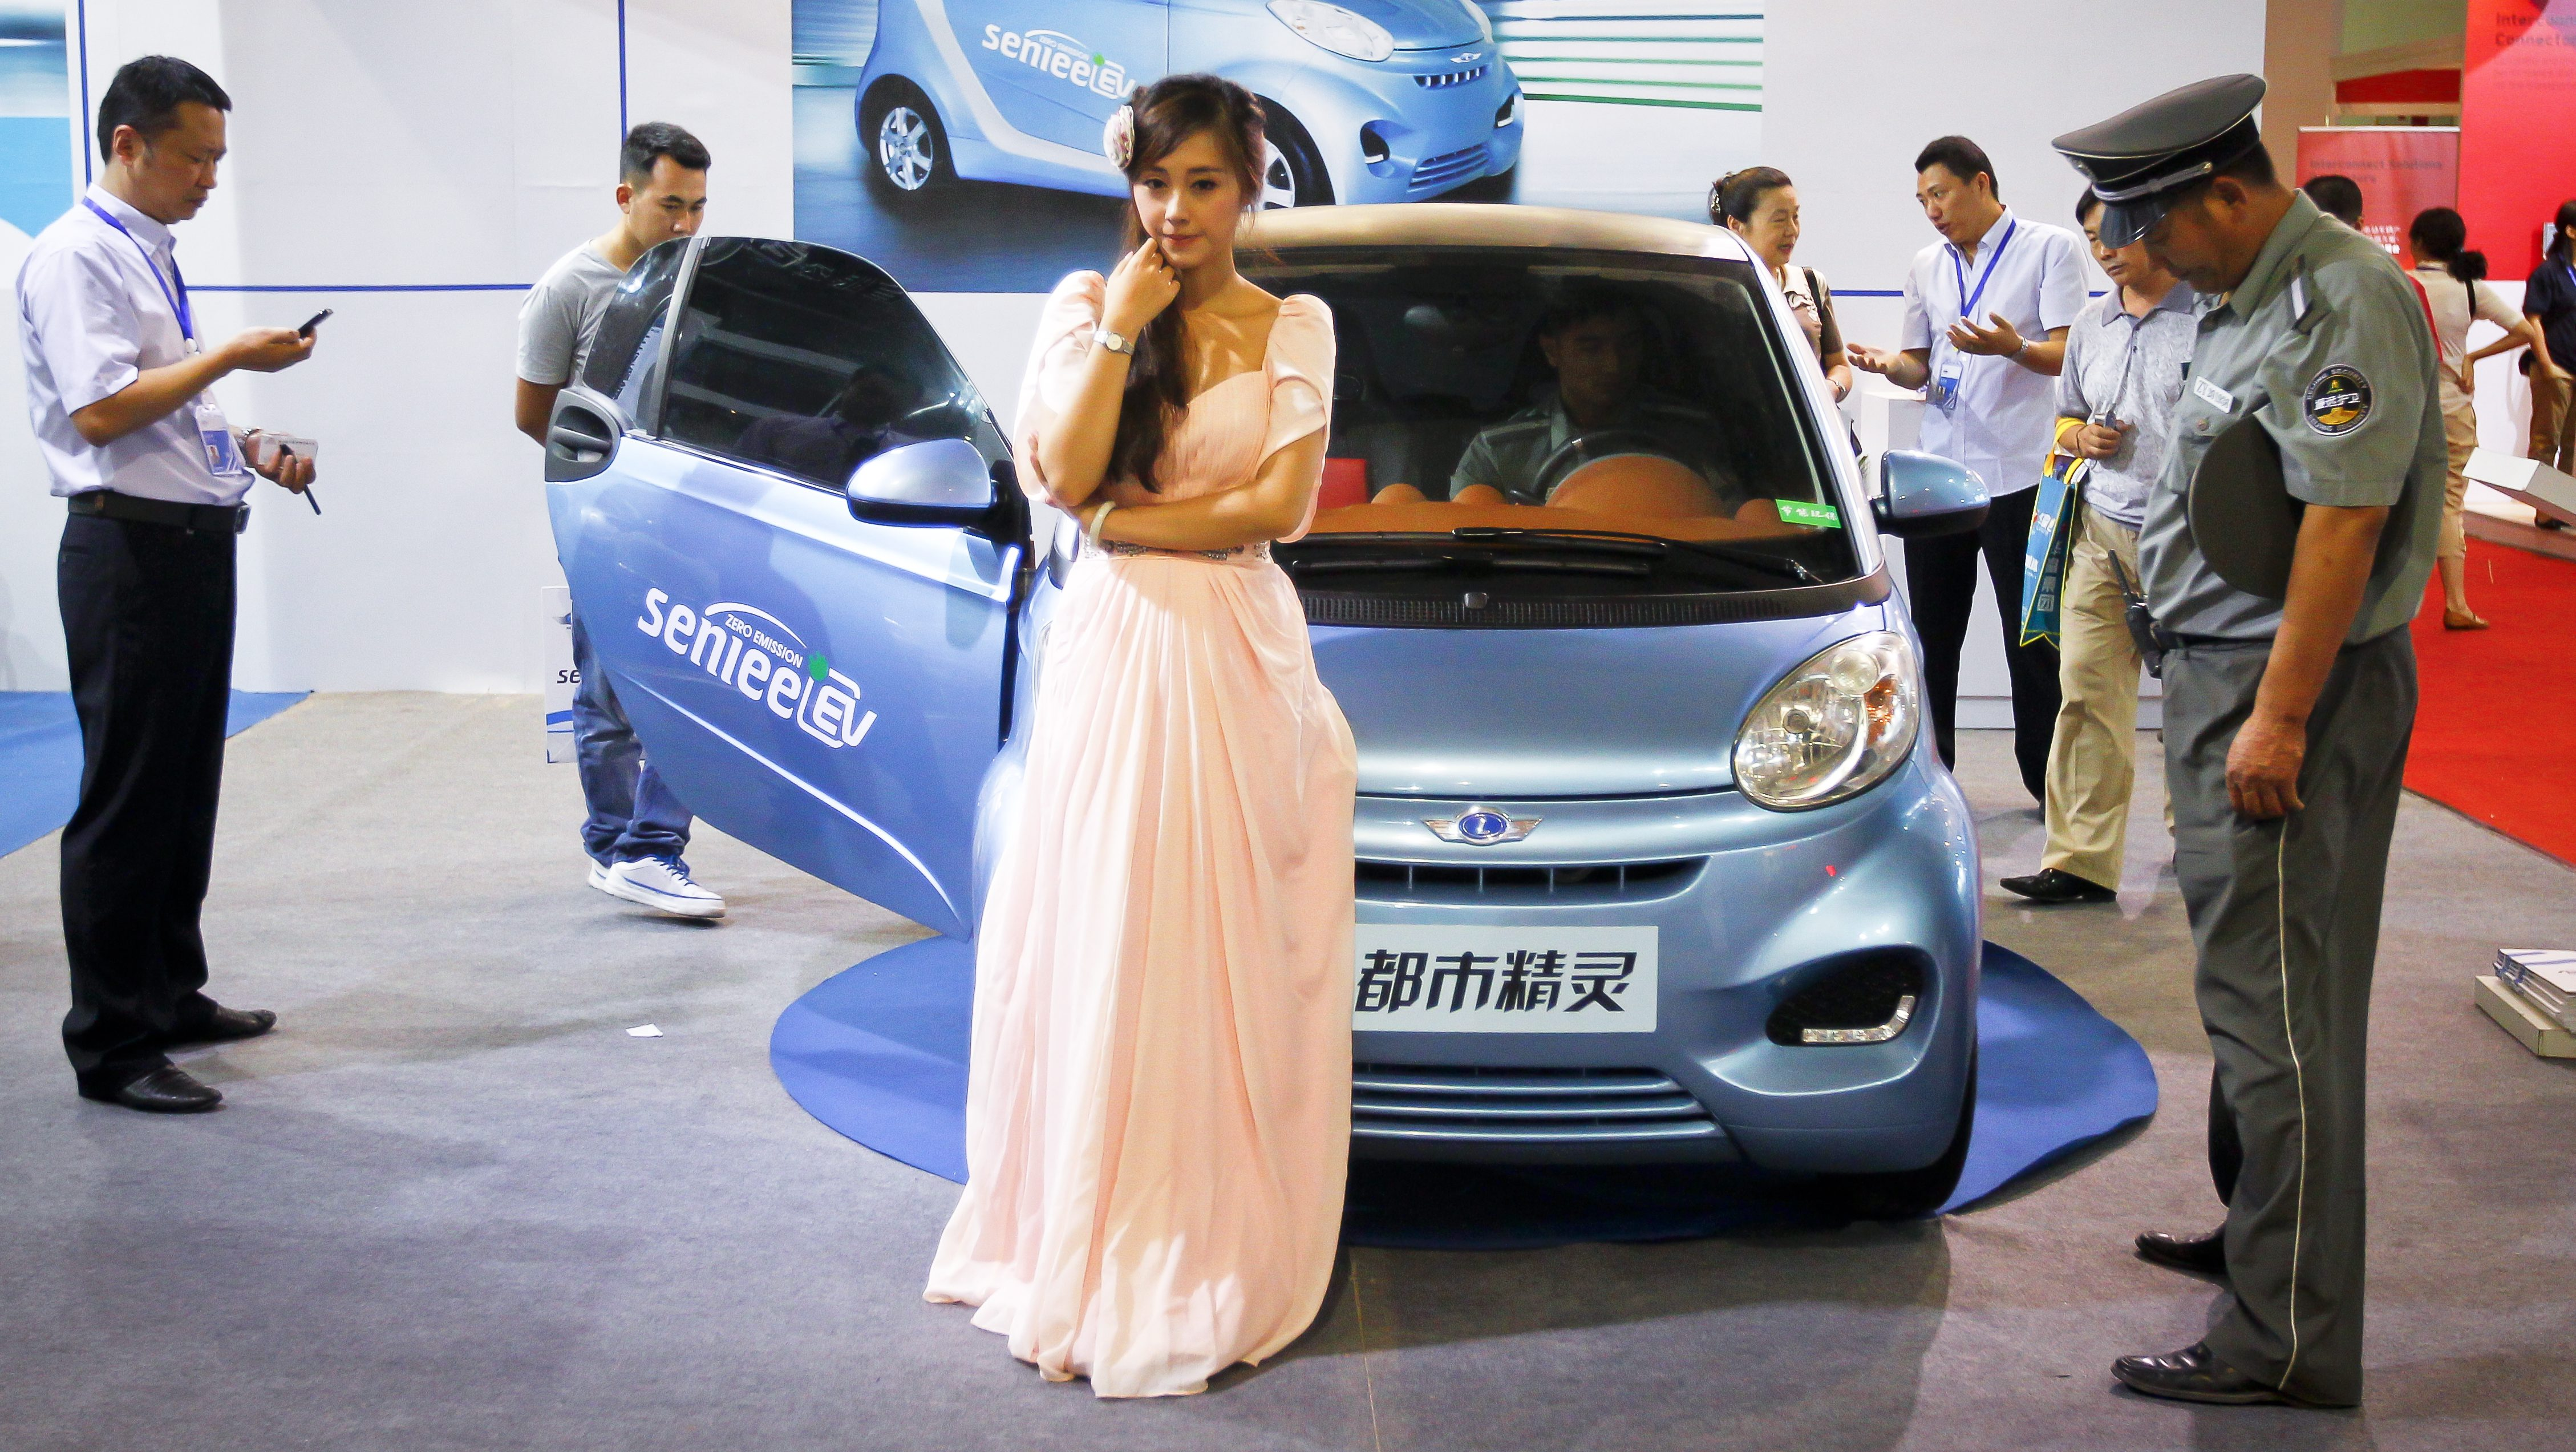 epa03294095 A model stands next to a Chinese made Senlee electric vehicle at the 8th Beijing International Pure Electric Vehicles, Hybrid Electric Vehicles and Charging Station Exhibition in Beijing, China 03 July 2012. The expo opened on 03 July and will run until 05 July. EPA/DIEGO AZUBEL